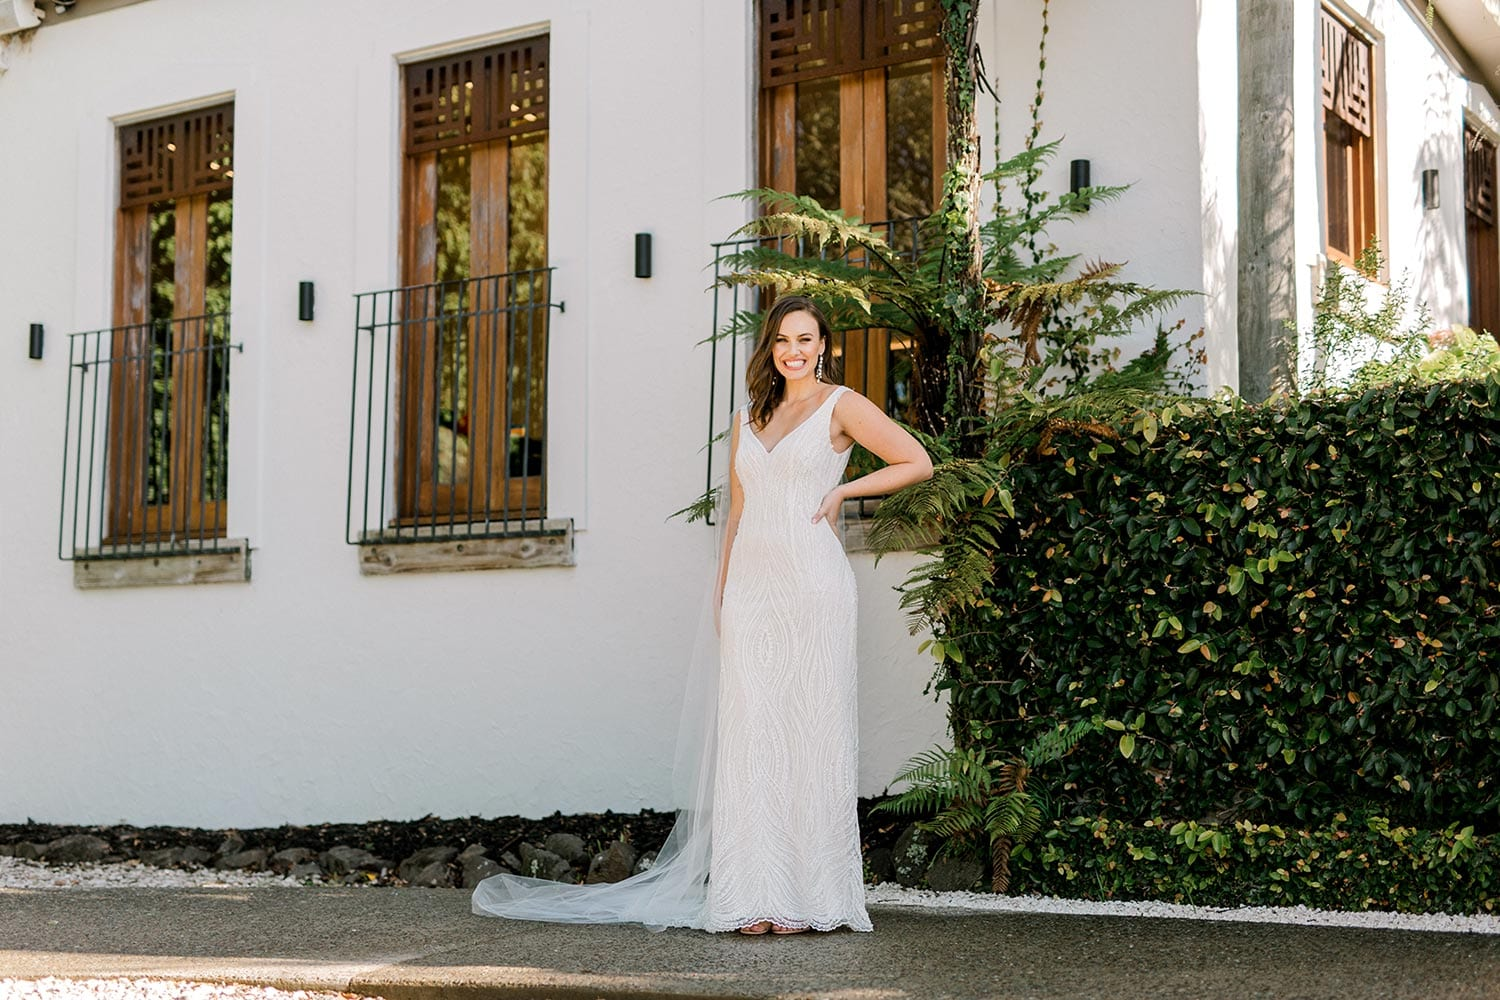 Kiera Wedding Dress from Vinka Design. Beautifully beaded lace wedding dress. Deep V-neckline both front and back is complemented with delicate sheer lace shoulder detail & structured bodice. Full length of dress with train to the side. Photographed at Tui Hills.